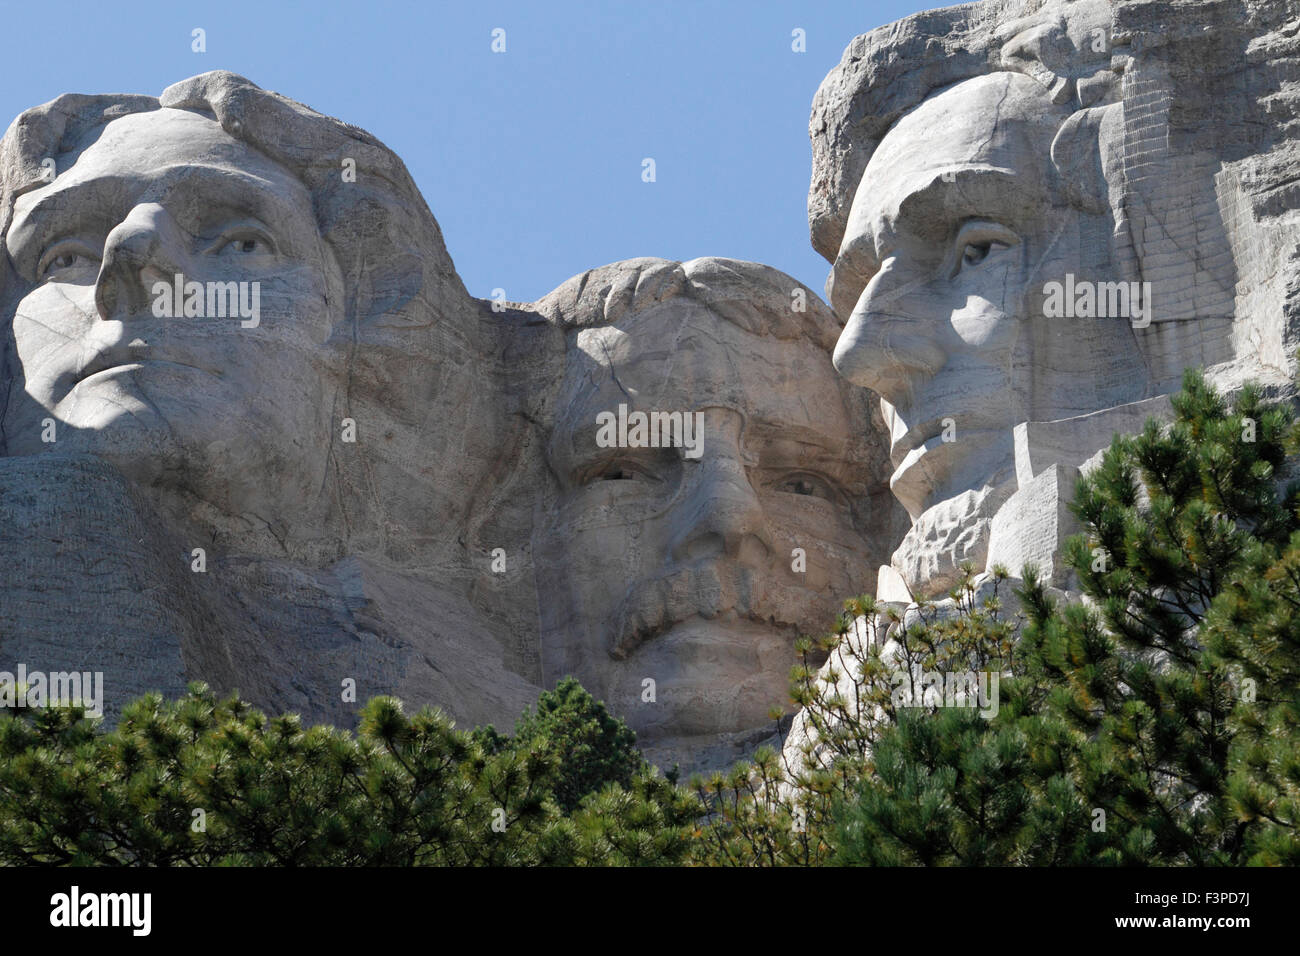 Presidents Jefferson, Roosevelt and Lincoln on Mount Rushmore National Monument in South Dakota - Stock Image